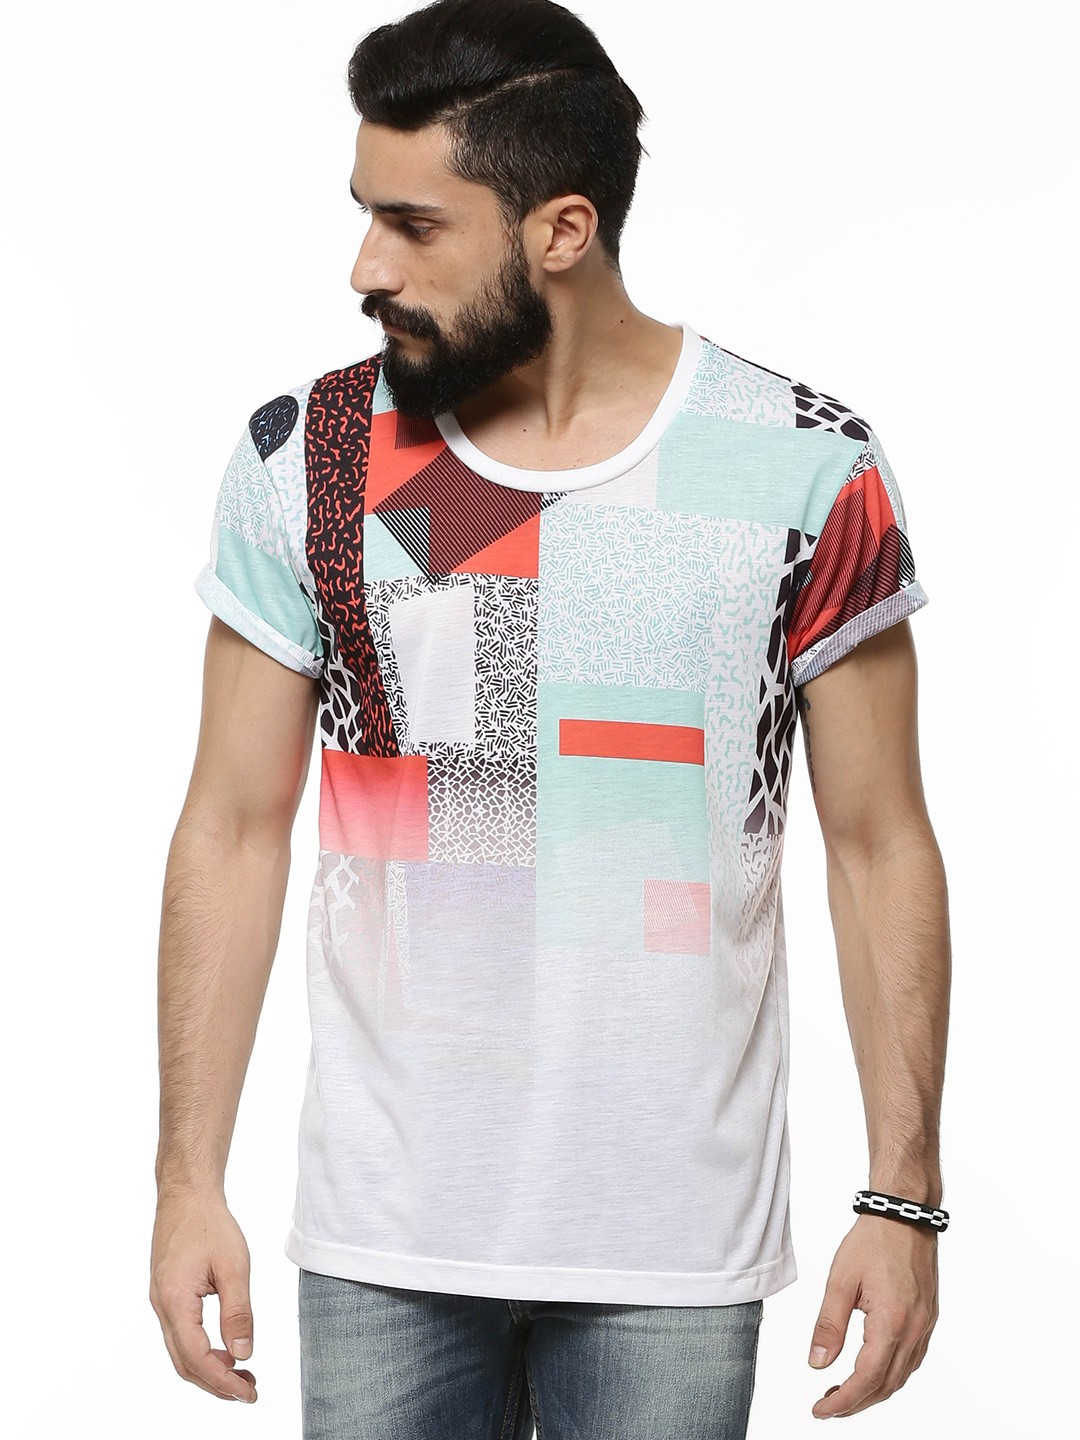 3aff28f07 Printed T Shirts Online India